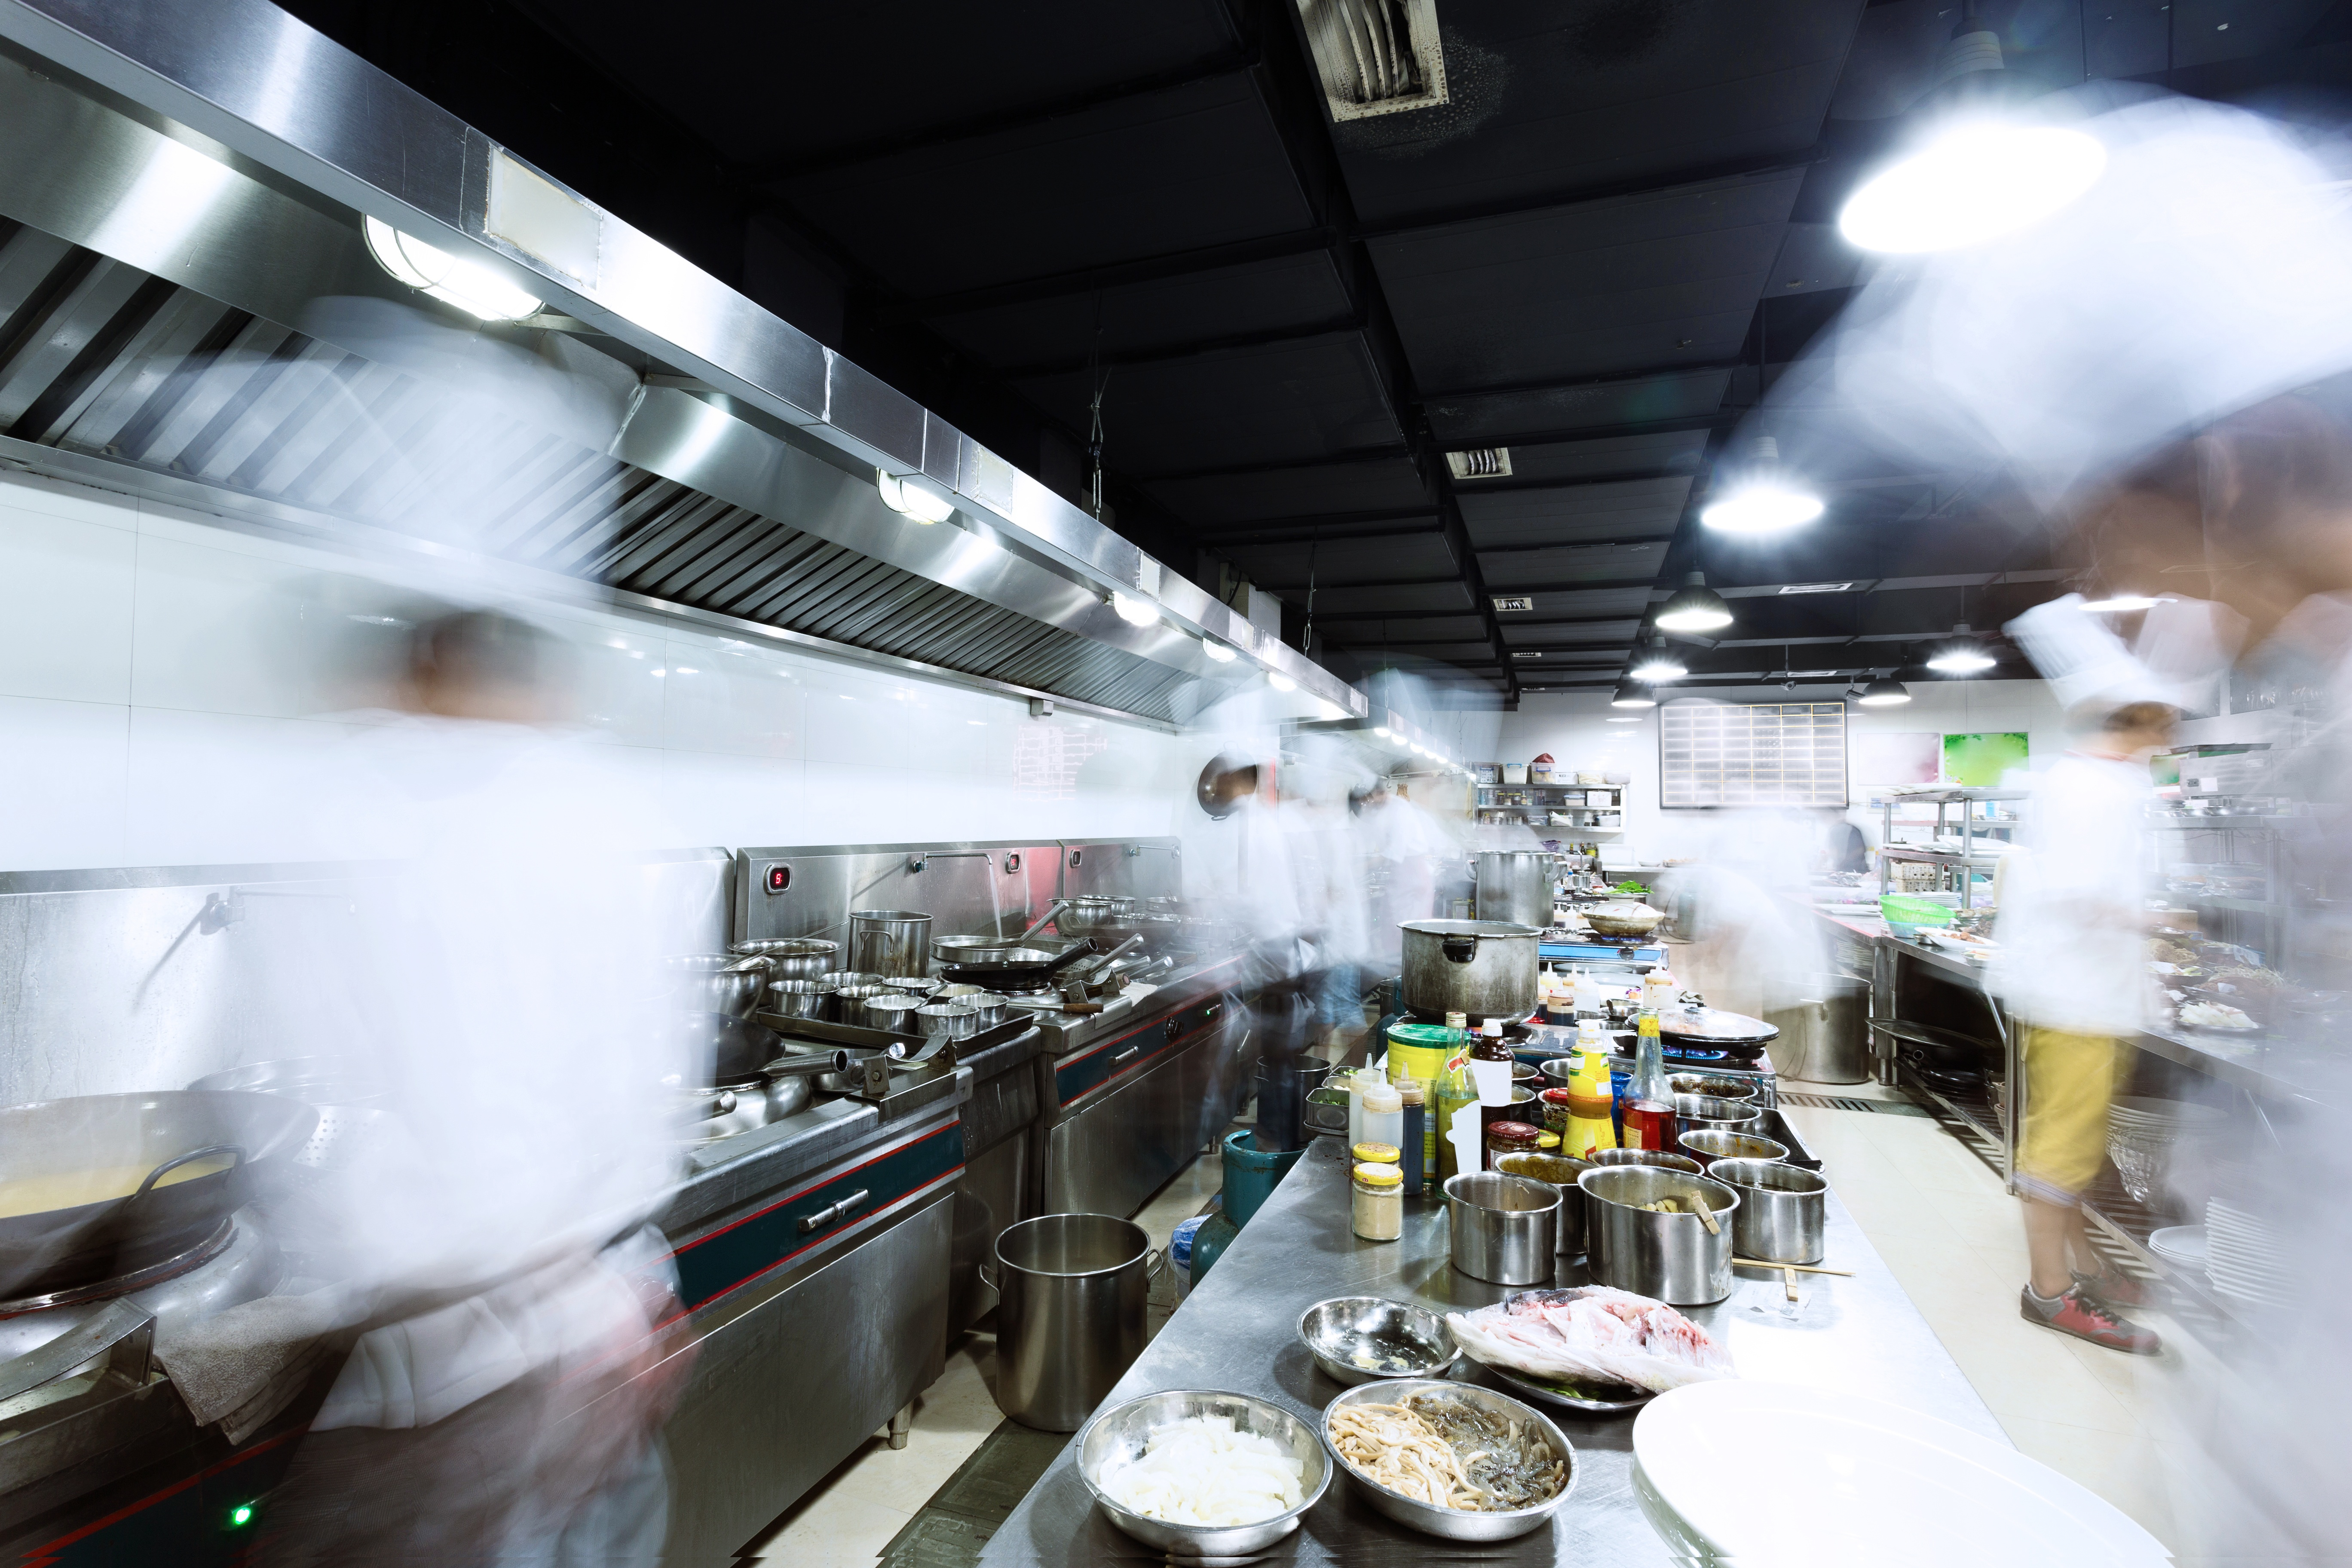 Question from the Web: What is the best way to create Lean Manufacturing in a restaurant?